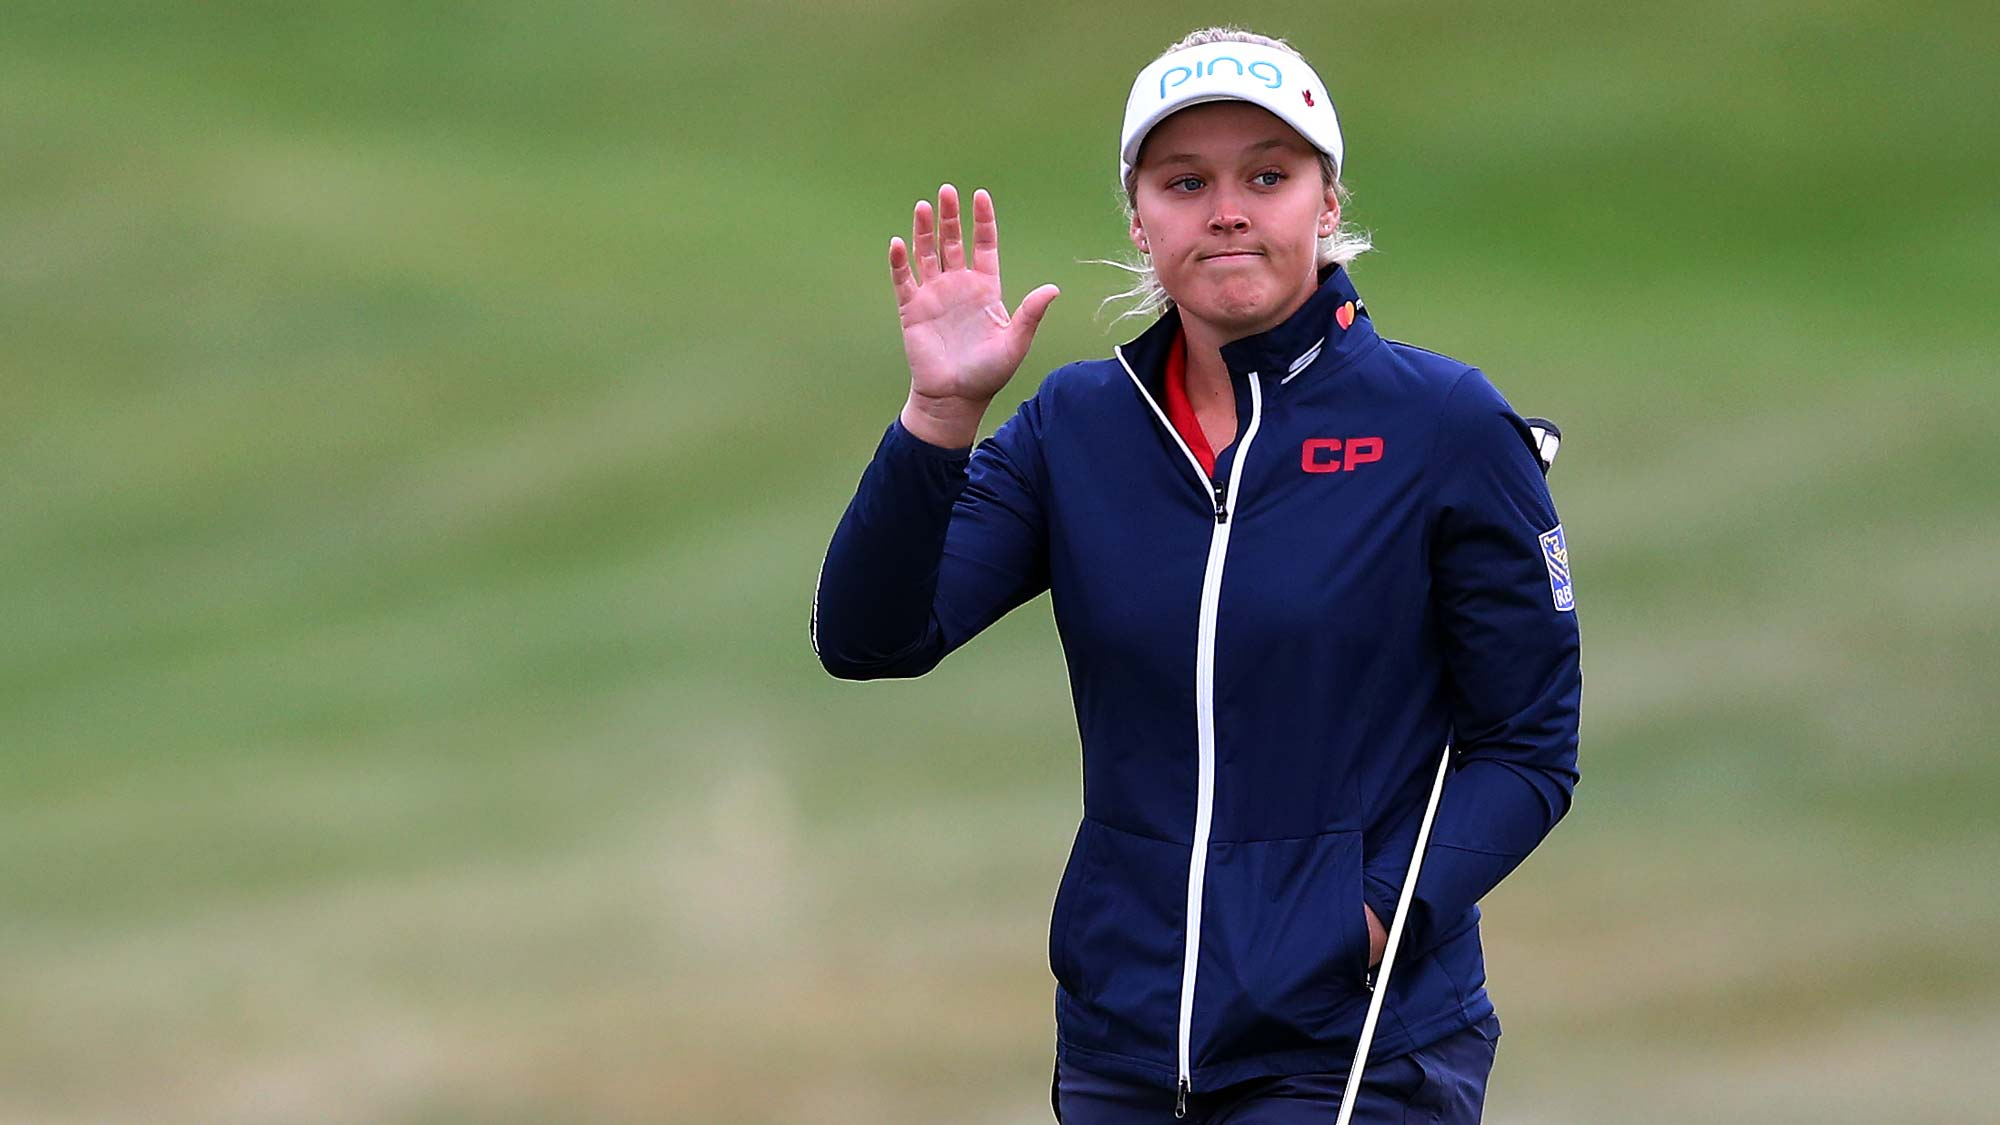 Brooke Henderson of Canada waves to the crowd on the 1st green during the final round of the CP Womens Open